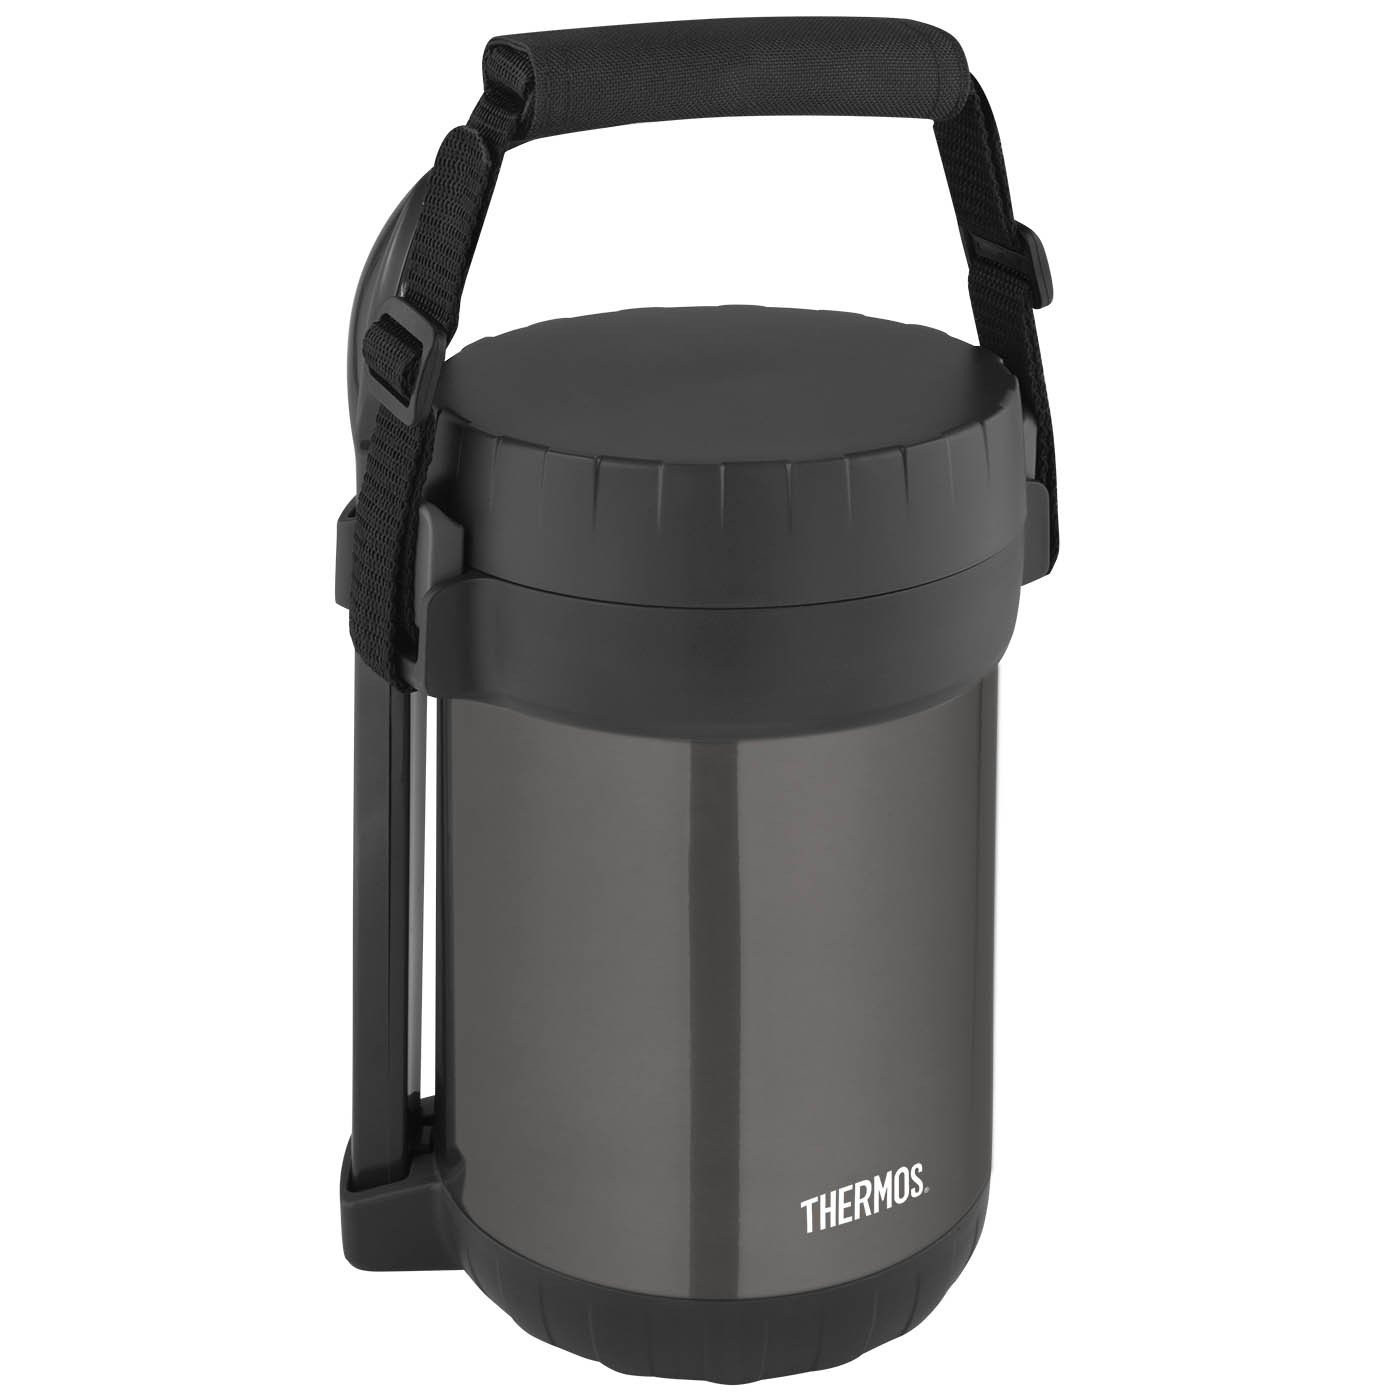 VACUUM INSULATED ALL-IN-1 MEAL CARRIER